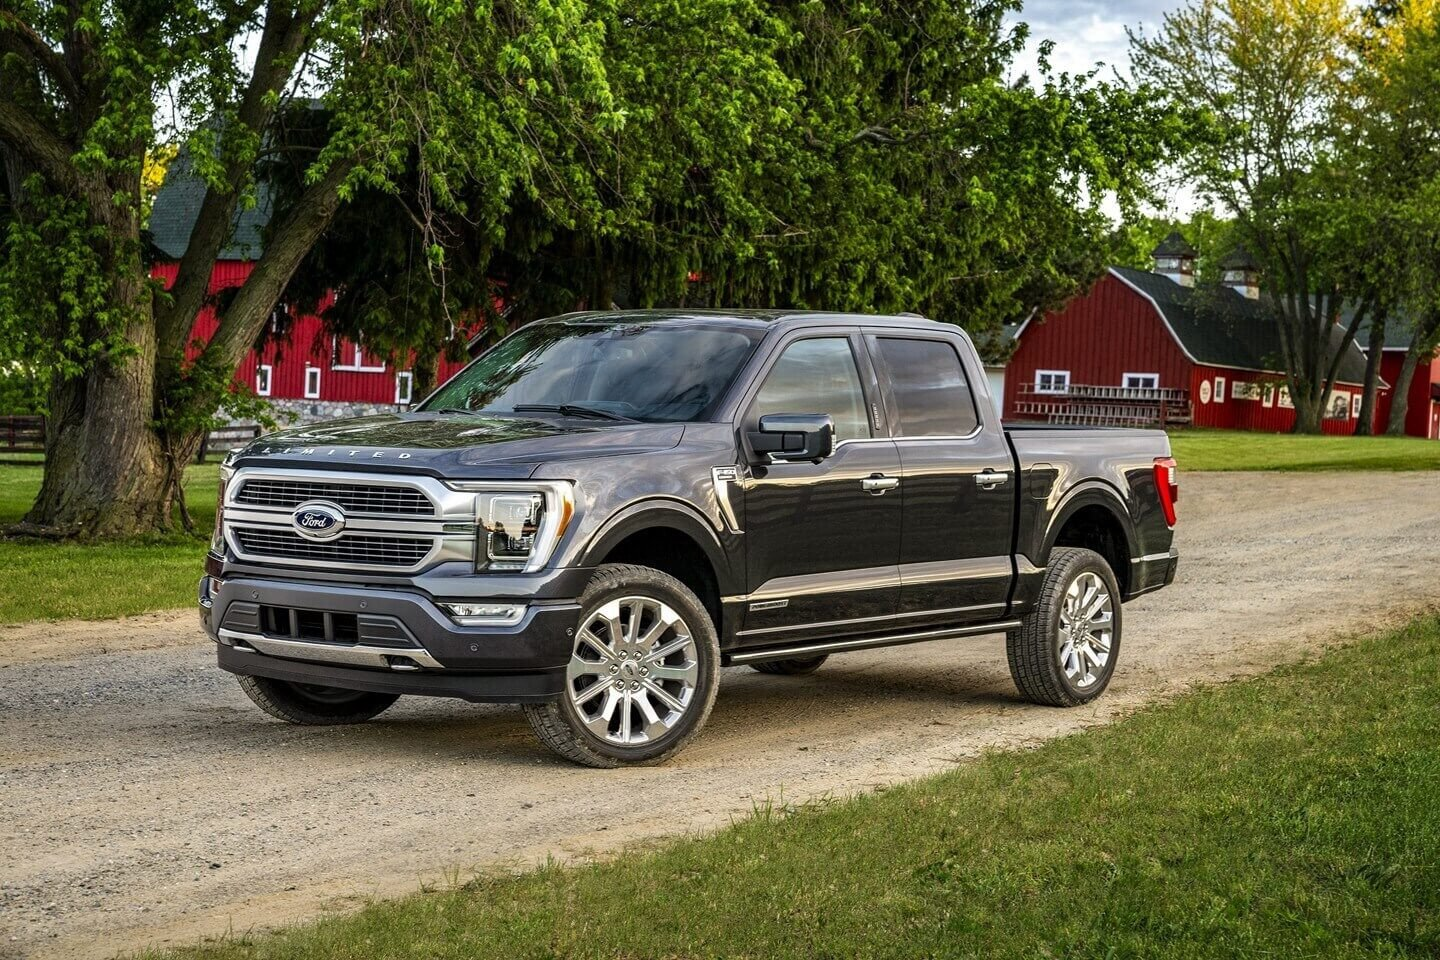 What is the Ford A plan? - Ford F-150 - Mullinax Ford of West Palm Beach